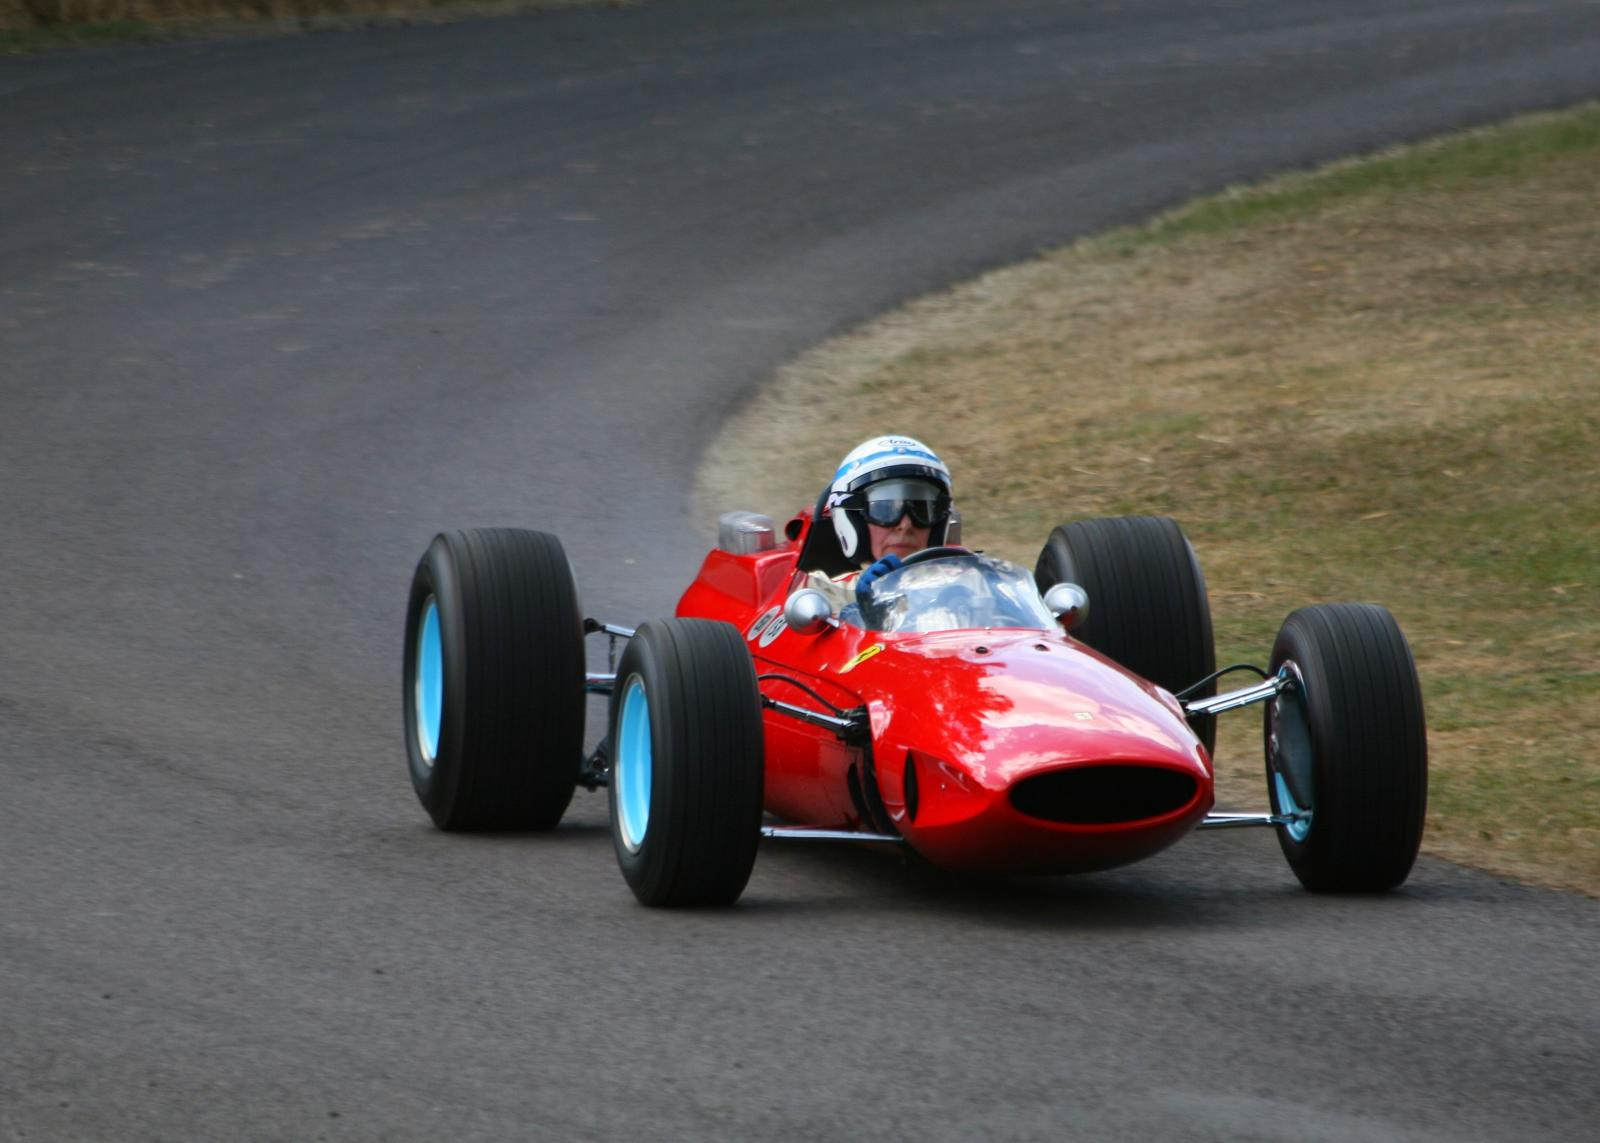 John Surtees image credit fen-tastic on flickr